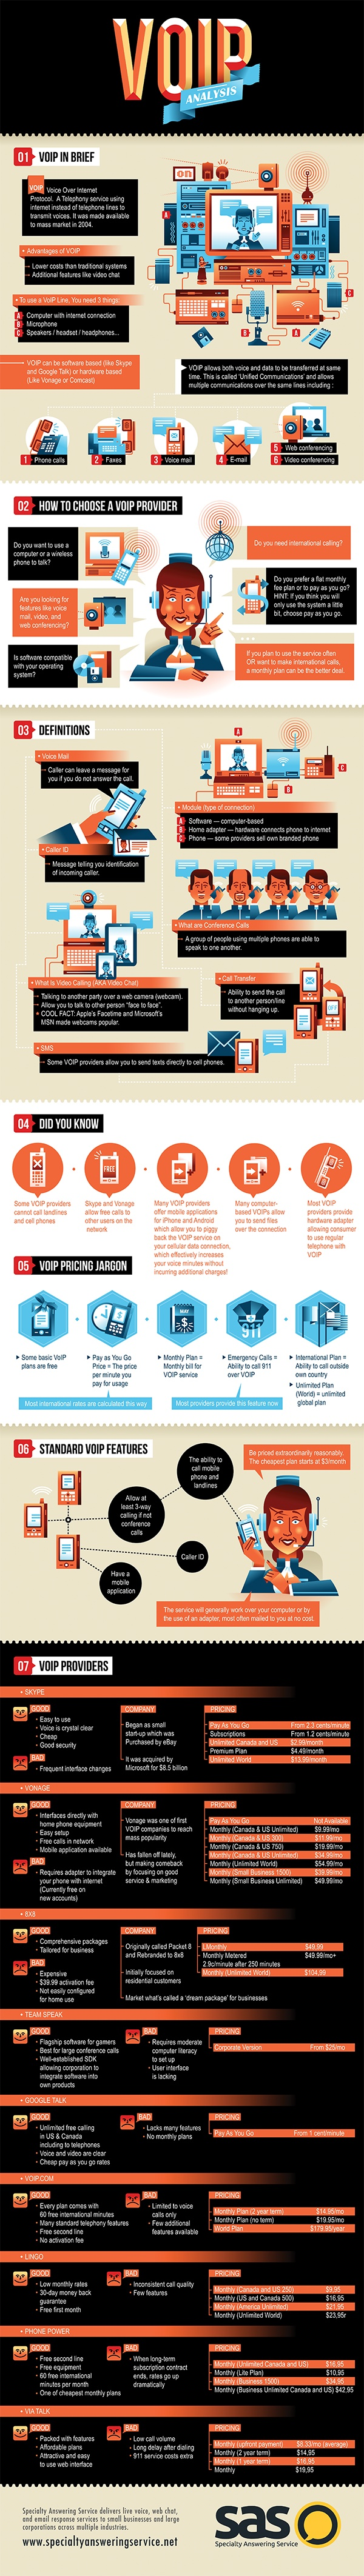 16 best up telecom images on pinterest infographic info graphics compare voip providers infographic fandeluxe Choice Image